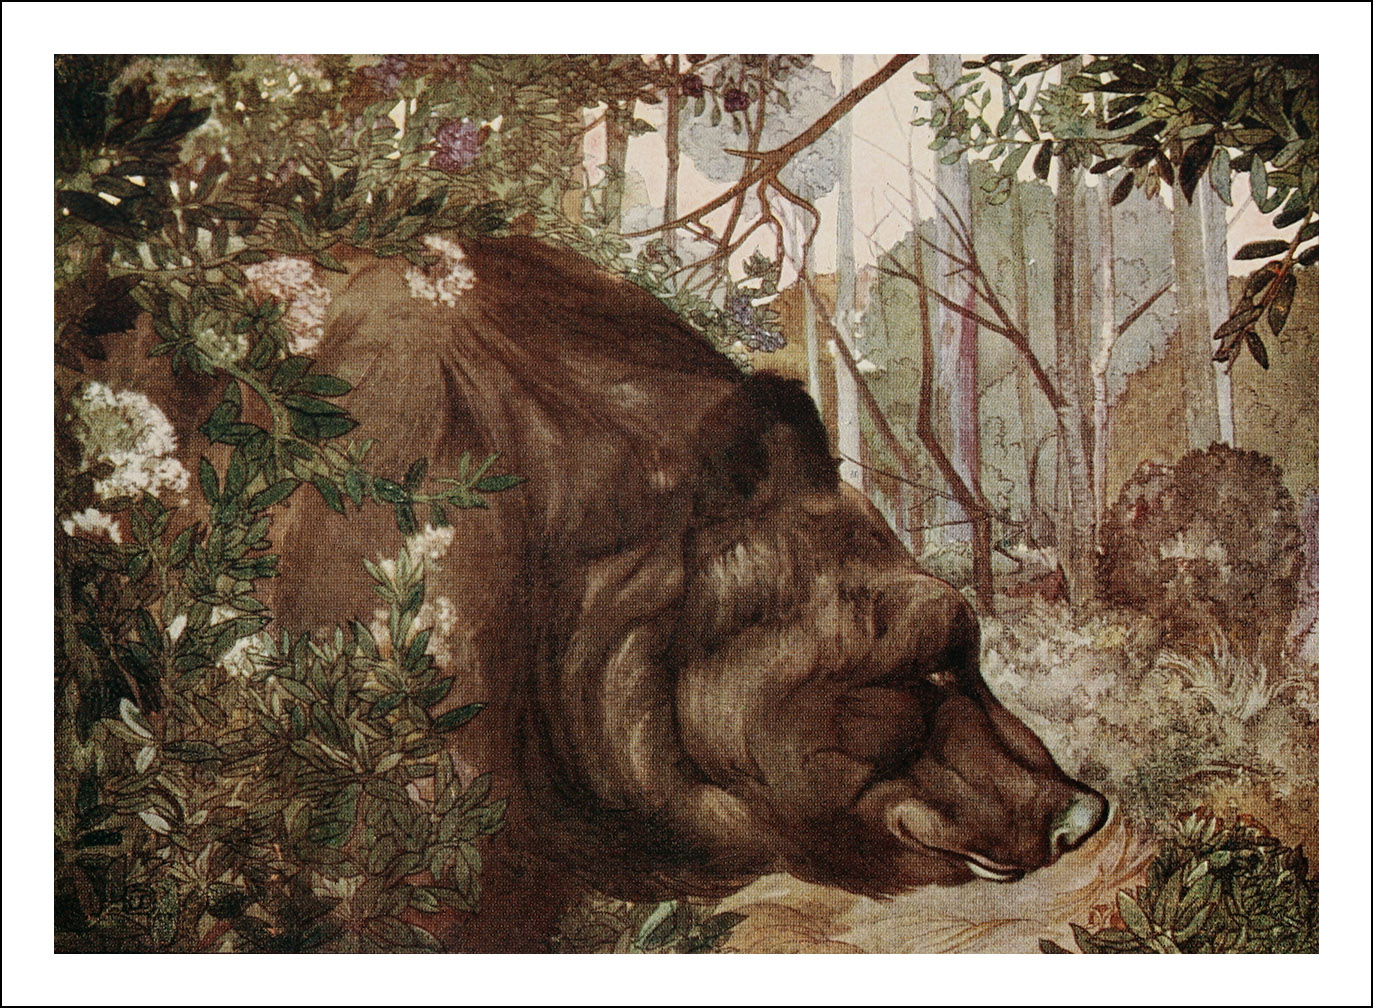 Edward Julius & Maurice Detmold, The jungle book